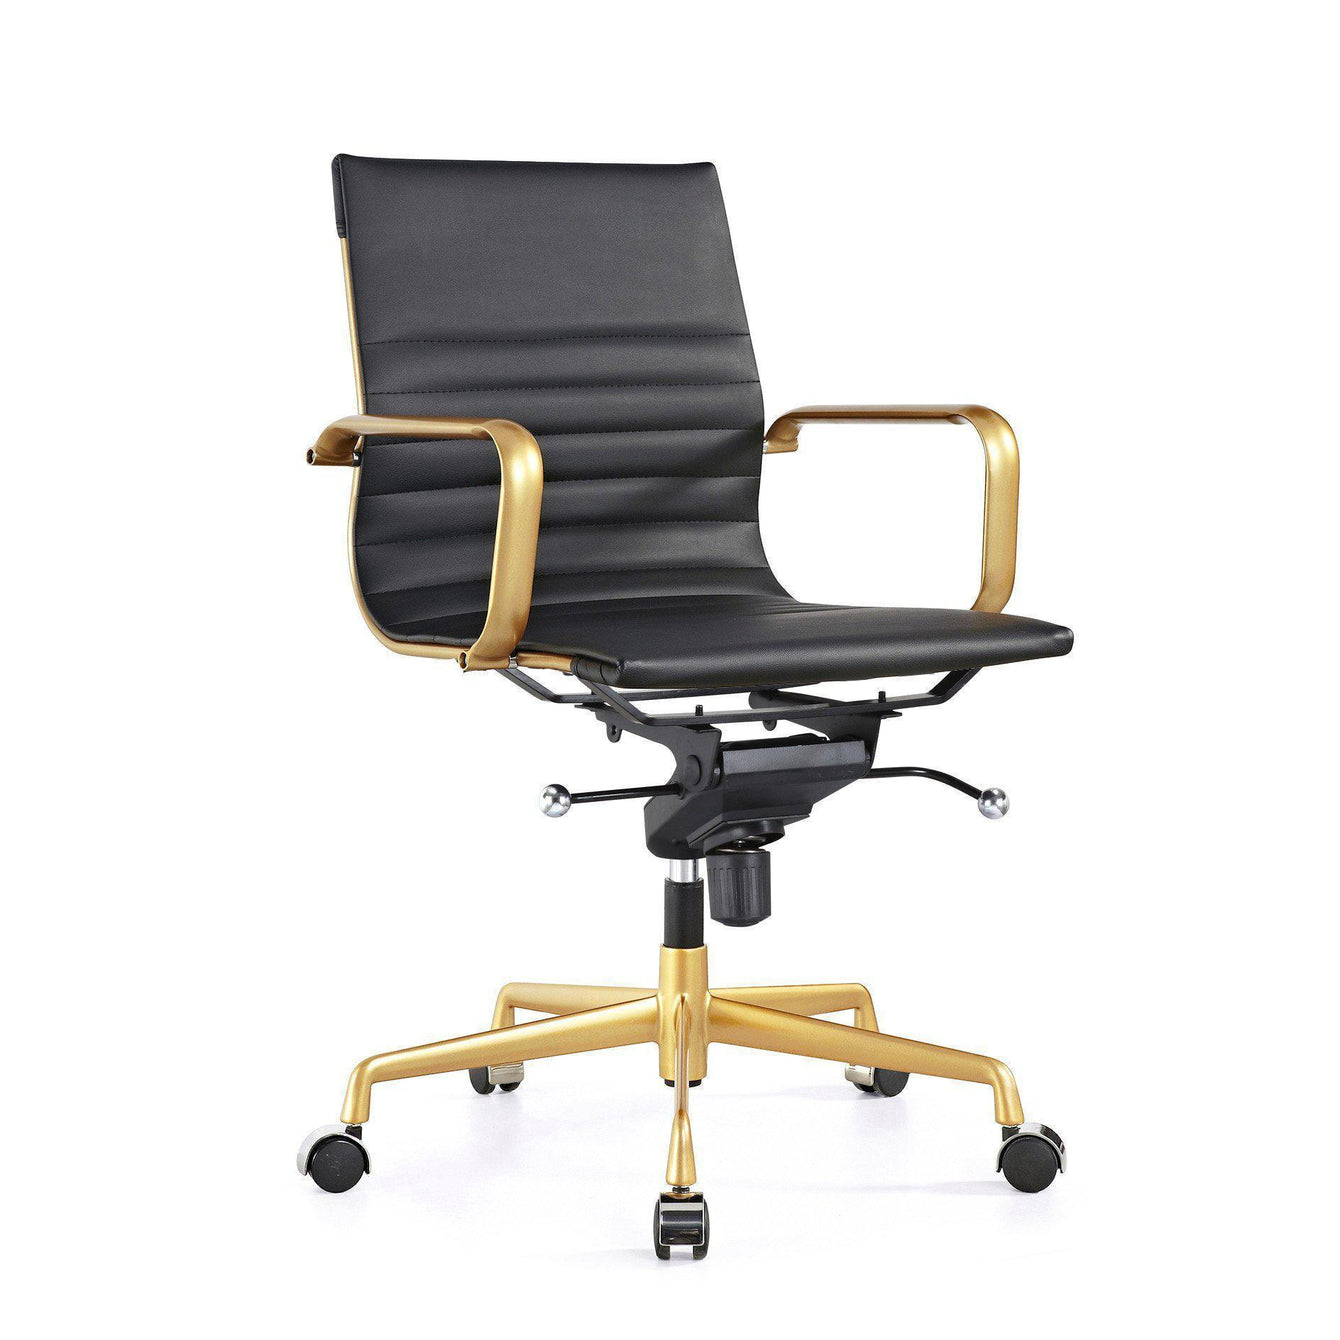 Decade Gold Modern Leather Office Chairs Set of 2-Home - Furniture - Office Chairs-DESIGN LAB MN-Black-Peccadilly